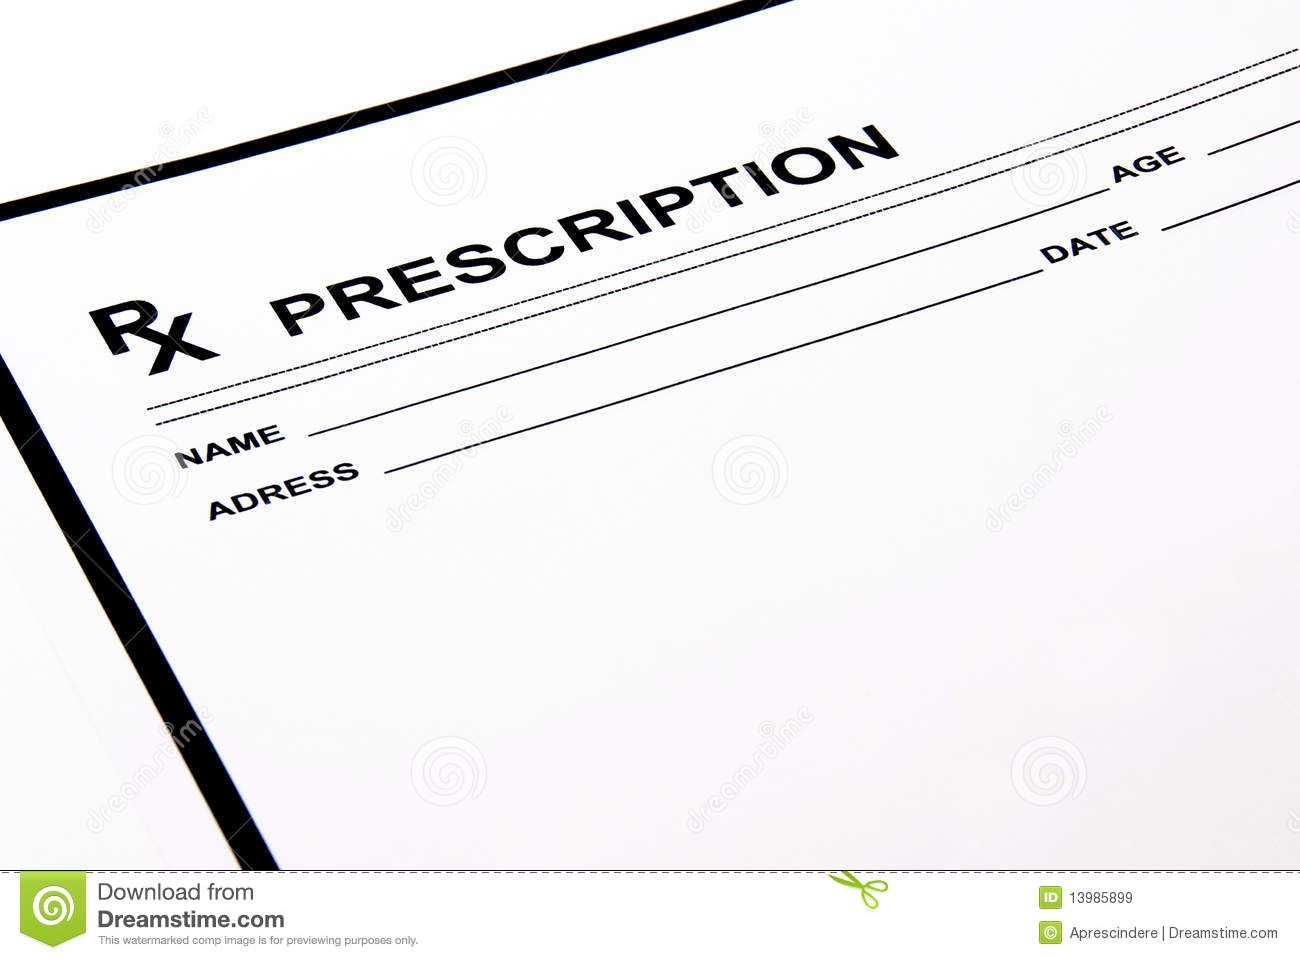 The Exciting Blank Prescription Pad Stock Image Image Of Doctor Regarding Blank Prescription Pad T In 2020 Prescription Pad Professional Templates Microsoft Word Free